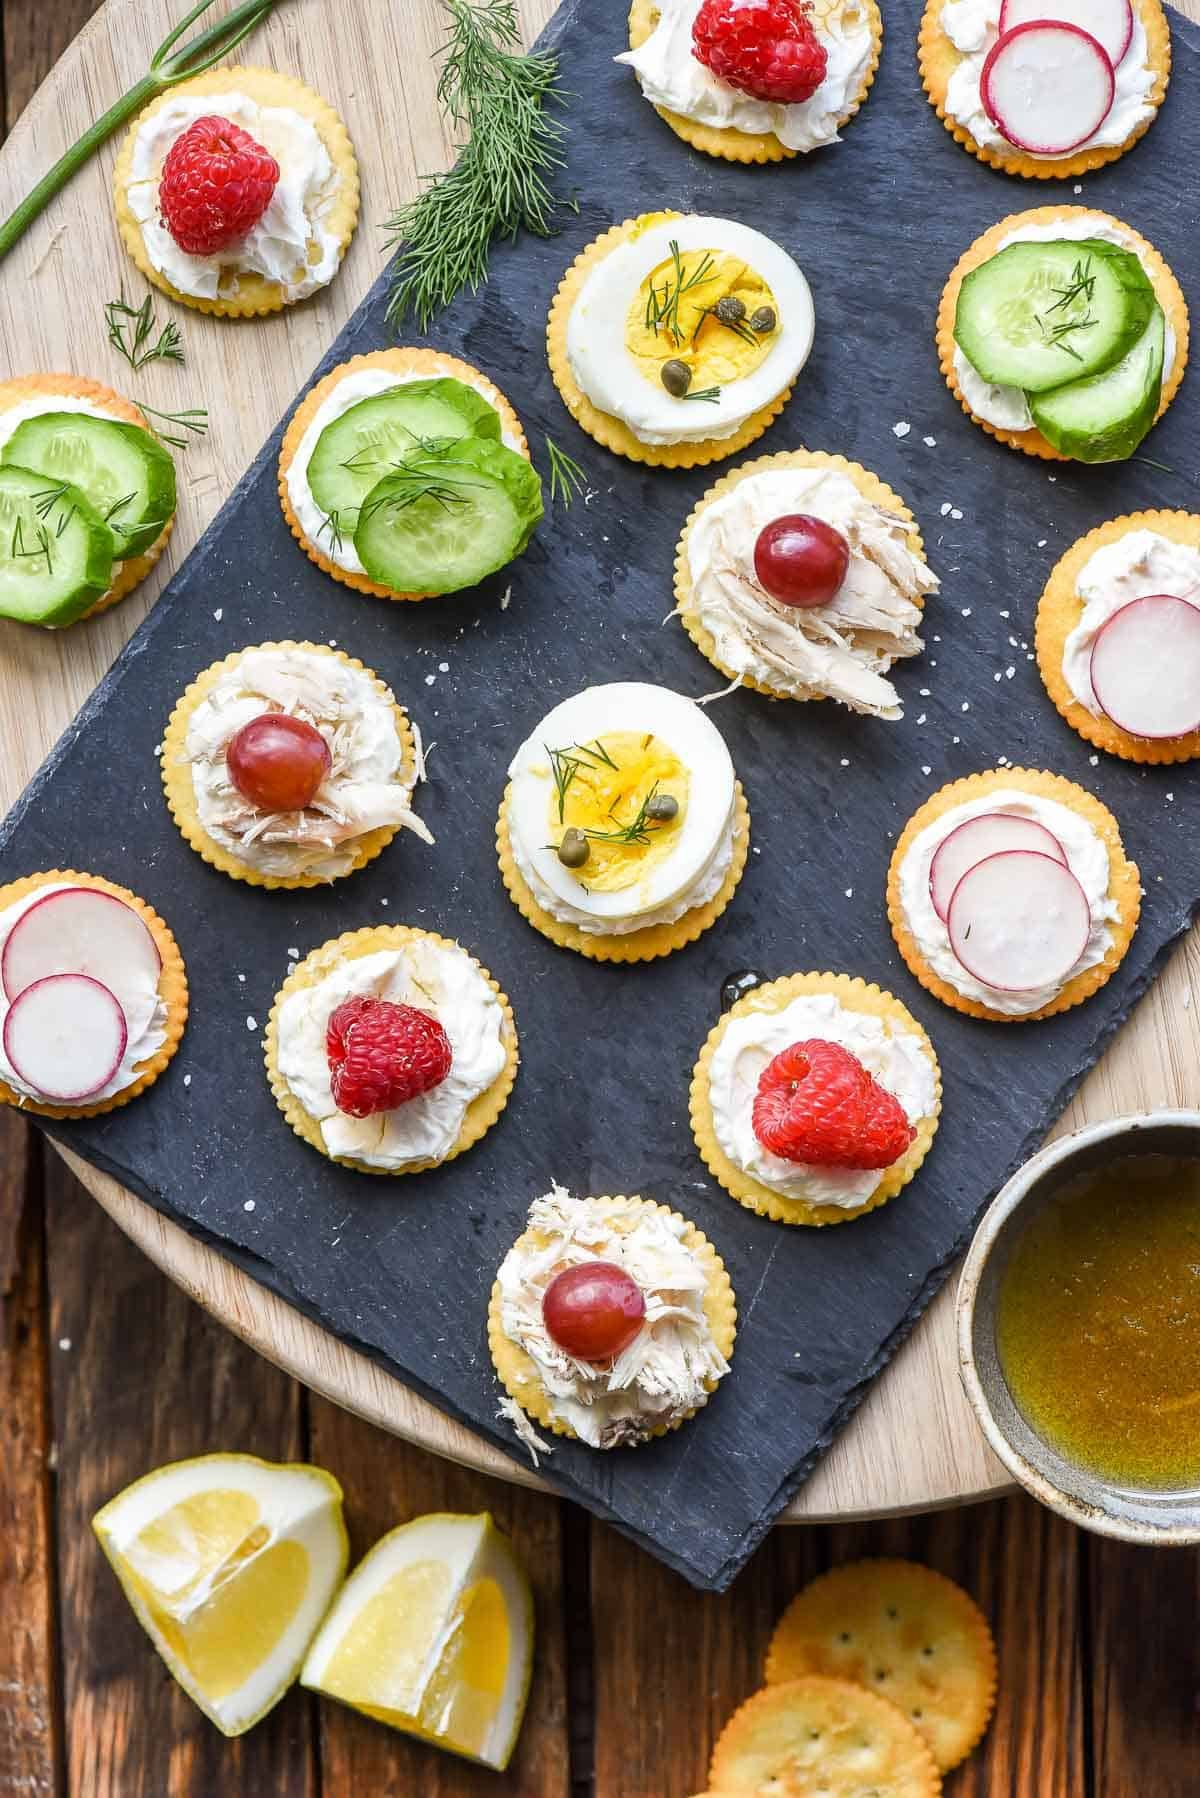 5 Ritz Cracker Appetizers You Can Make in 5 Minutes   FoodBlogs